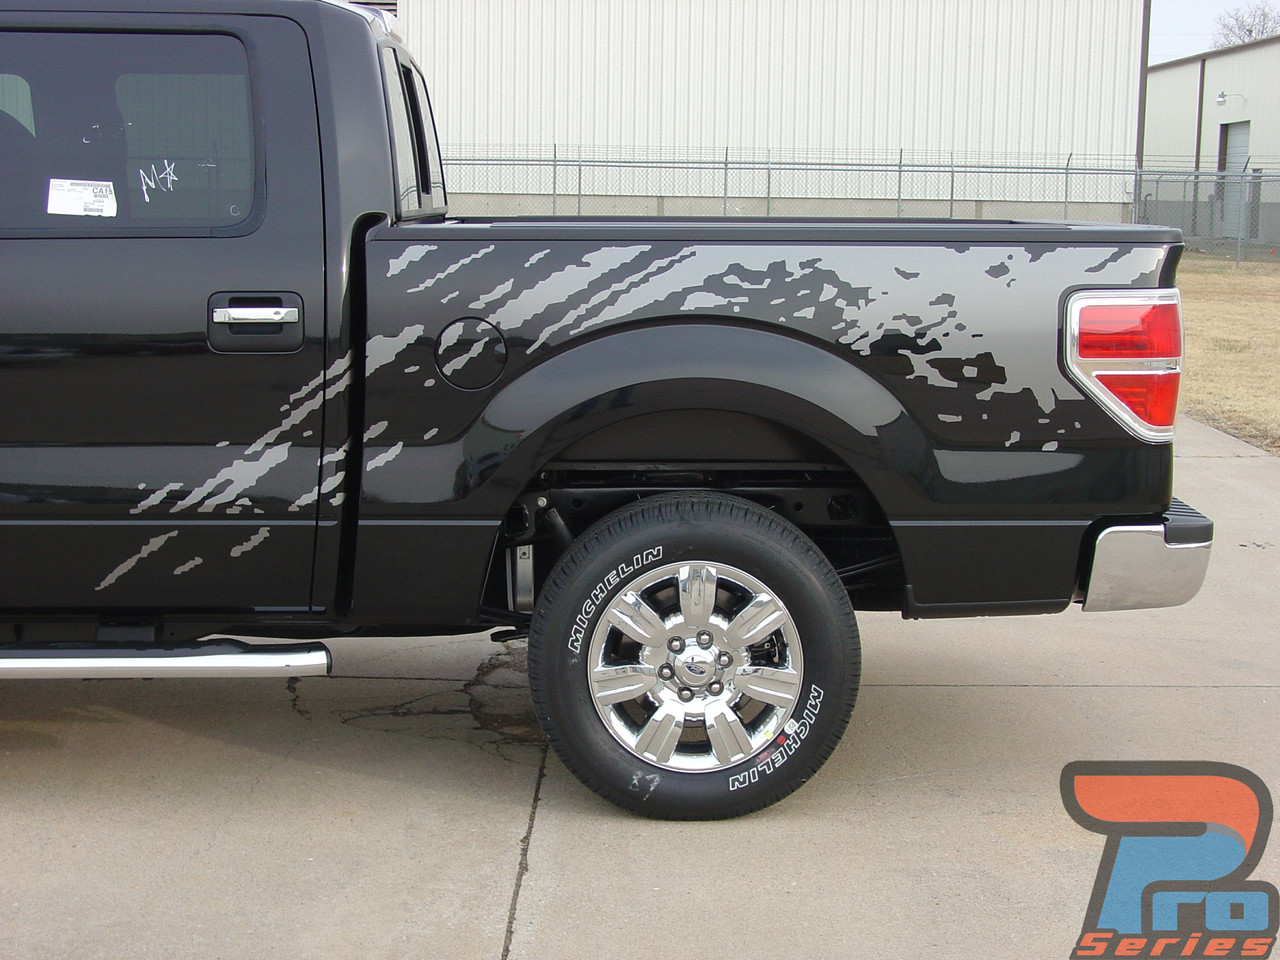 predator ford  stripes  mudslinger decals  vinyl graphics